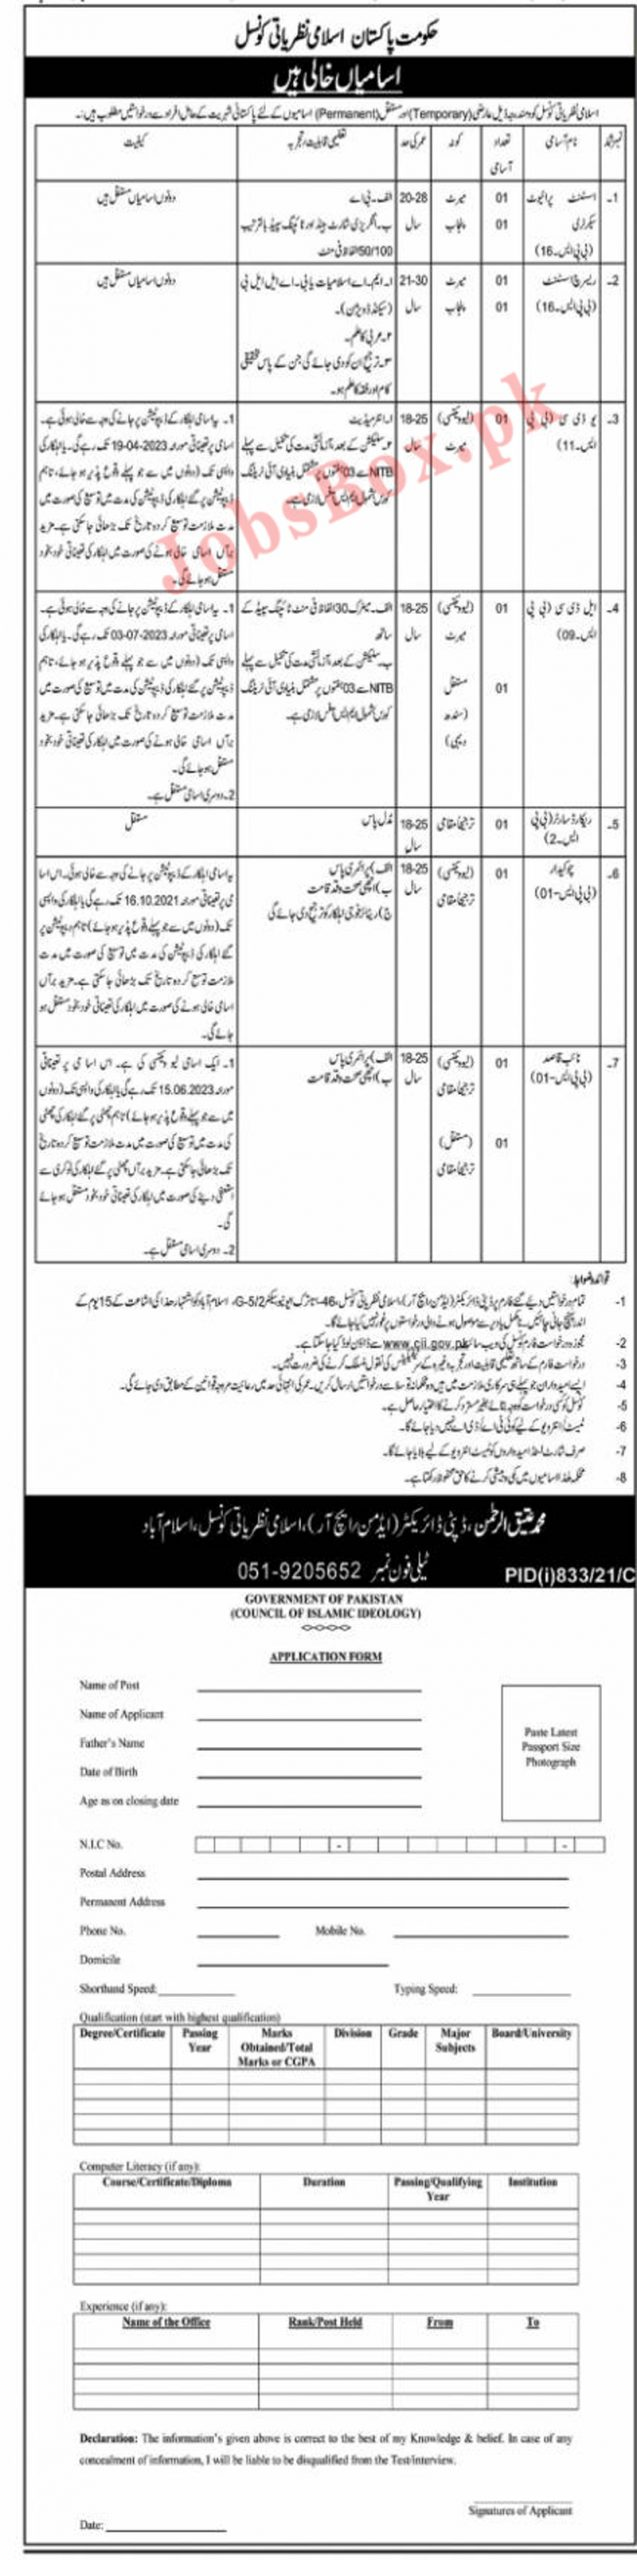 Council of Islamic Ideology Jobs 2021 - Download Application Form www.cii.gov.pk